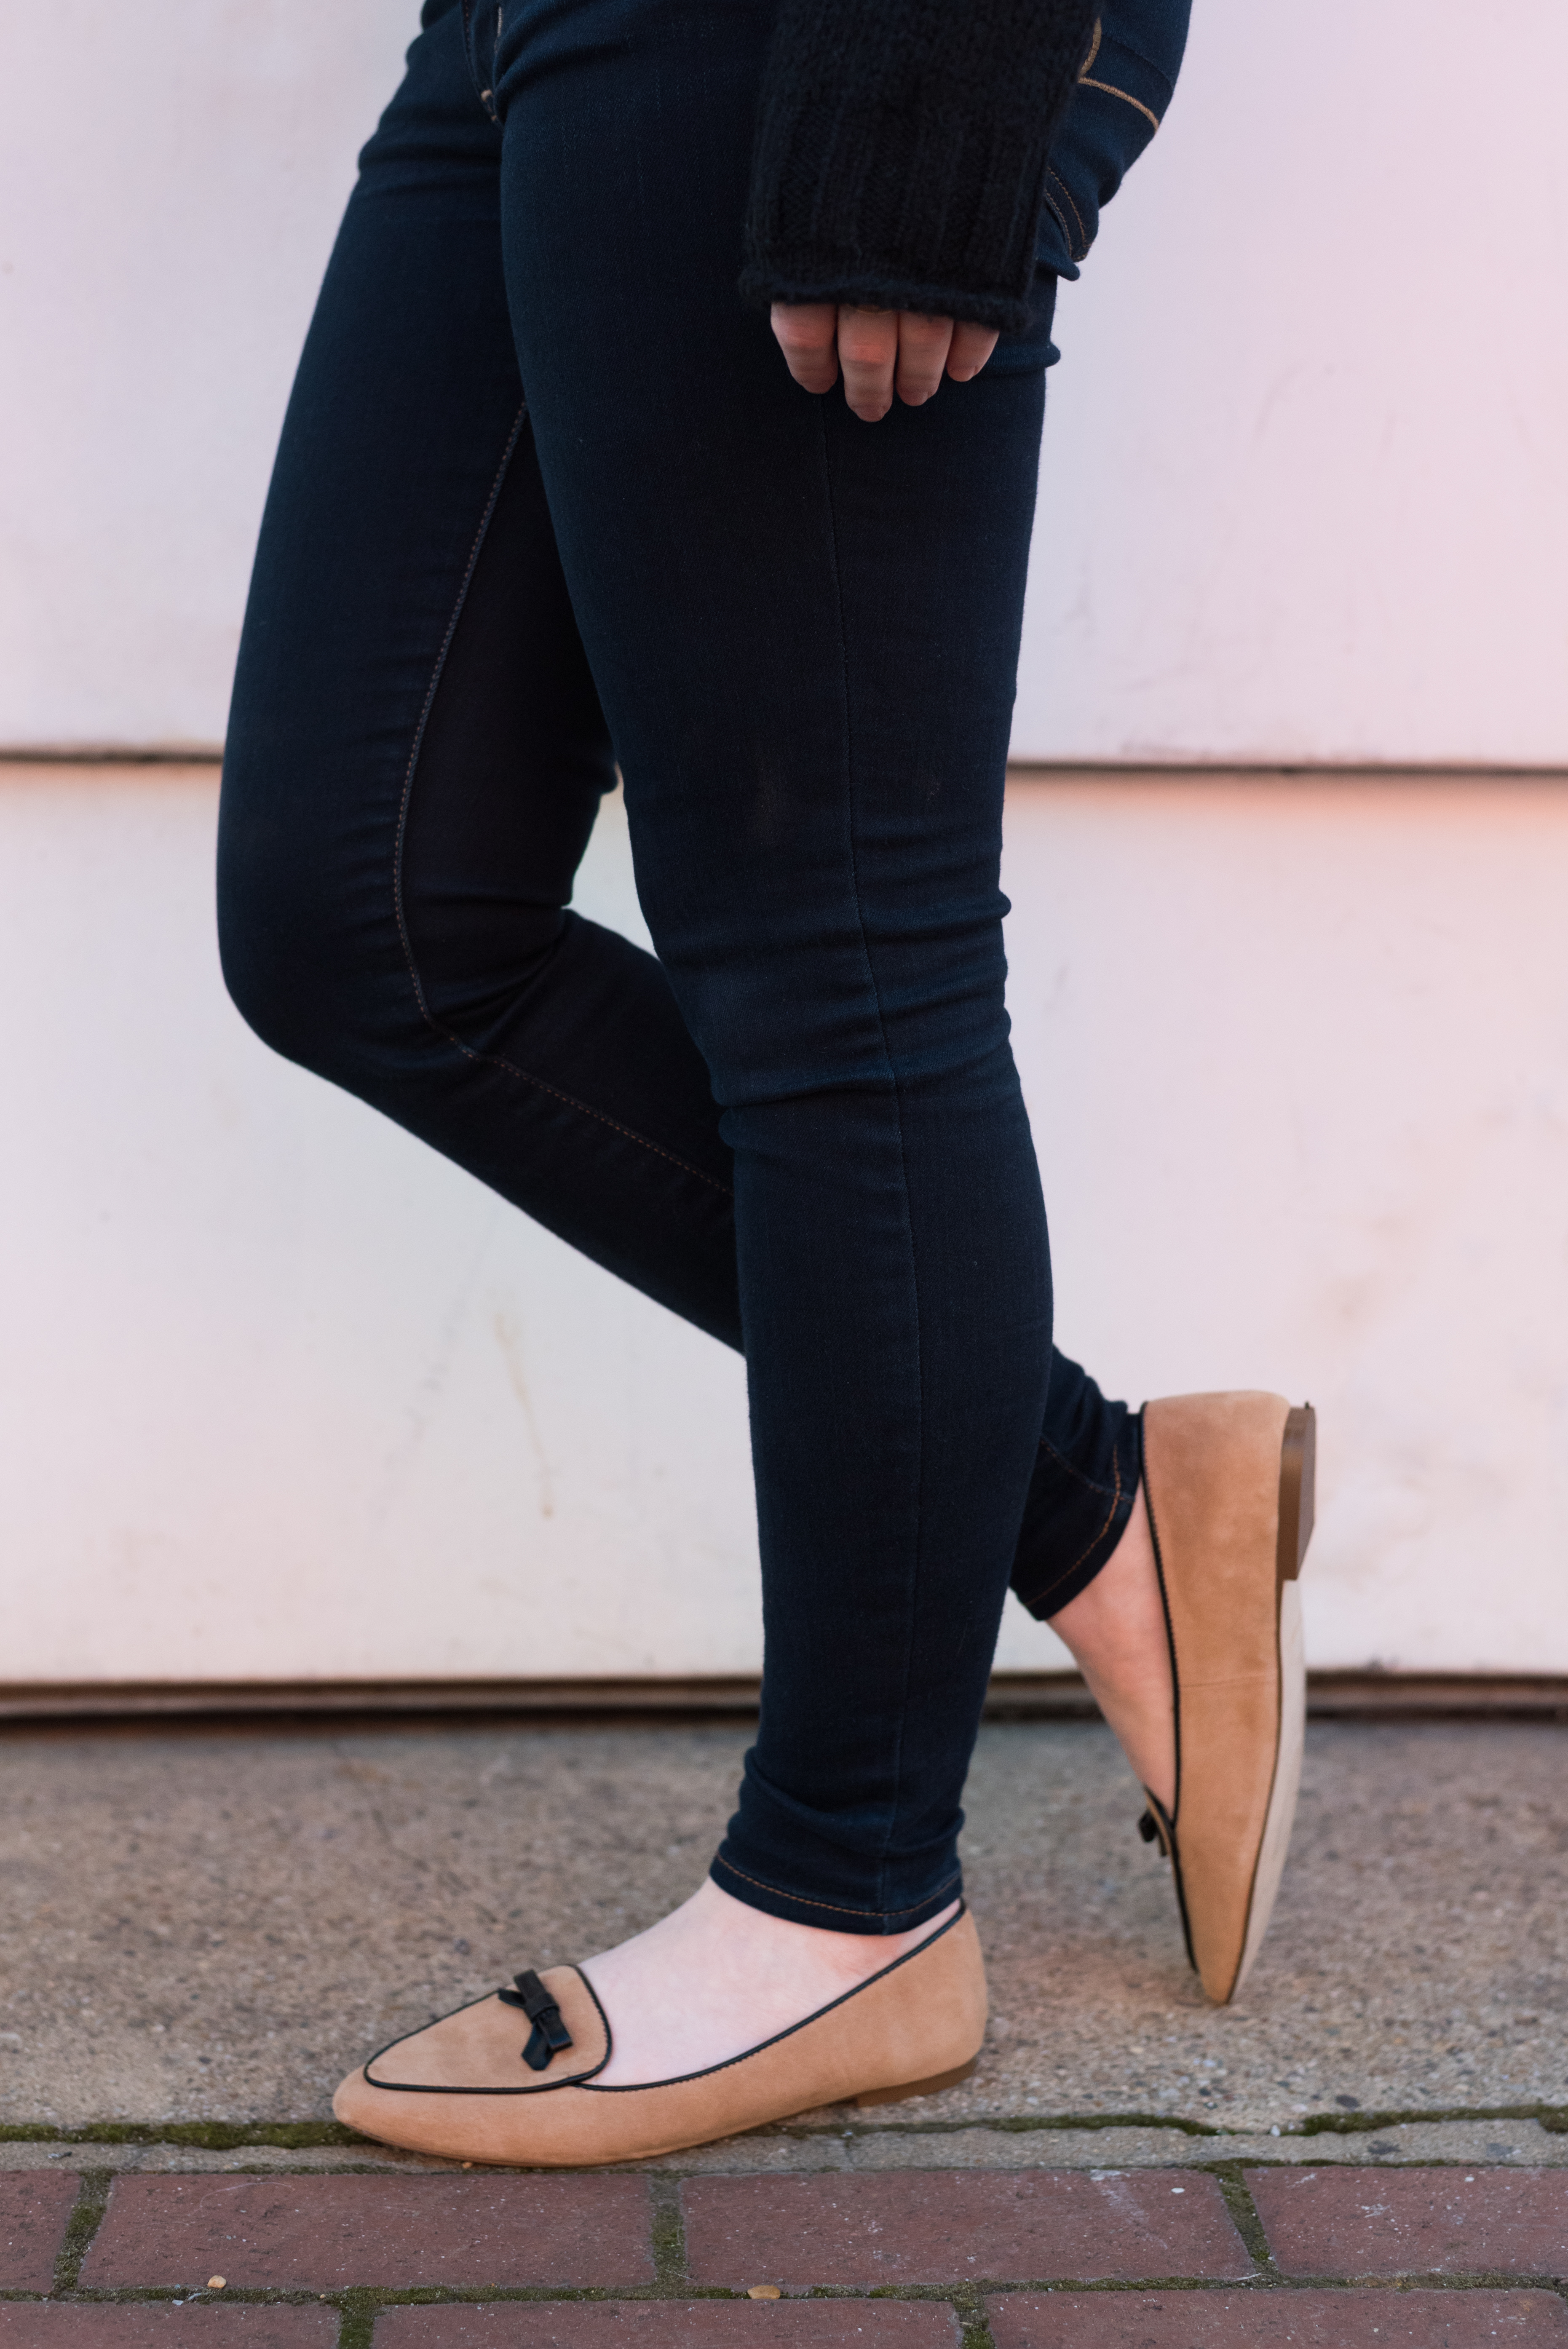 What I'm Already Doing to Implement My Word of the Year | Something Good, @Danaerinw , tan women's shoes, women's flats, women's loafers, loafers with bow, american eagle outfitters jeans, jeggings